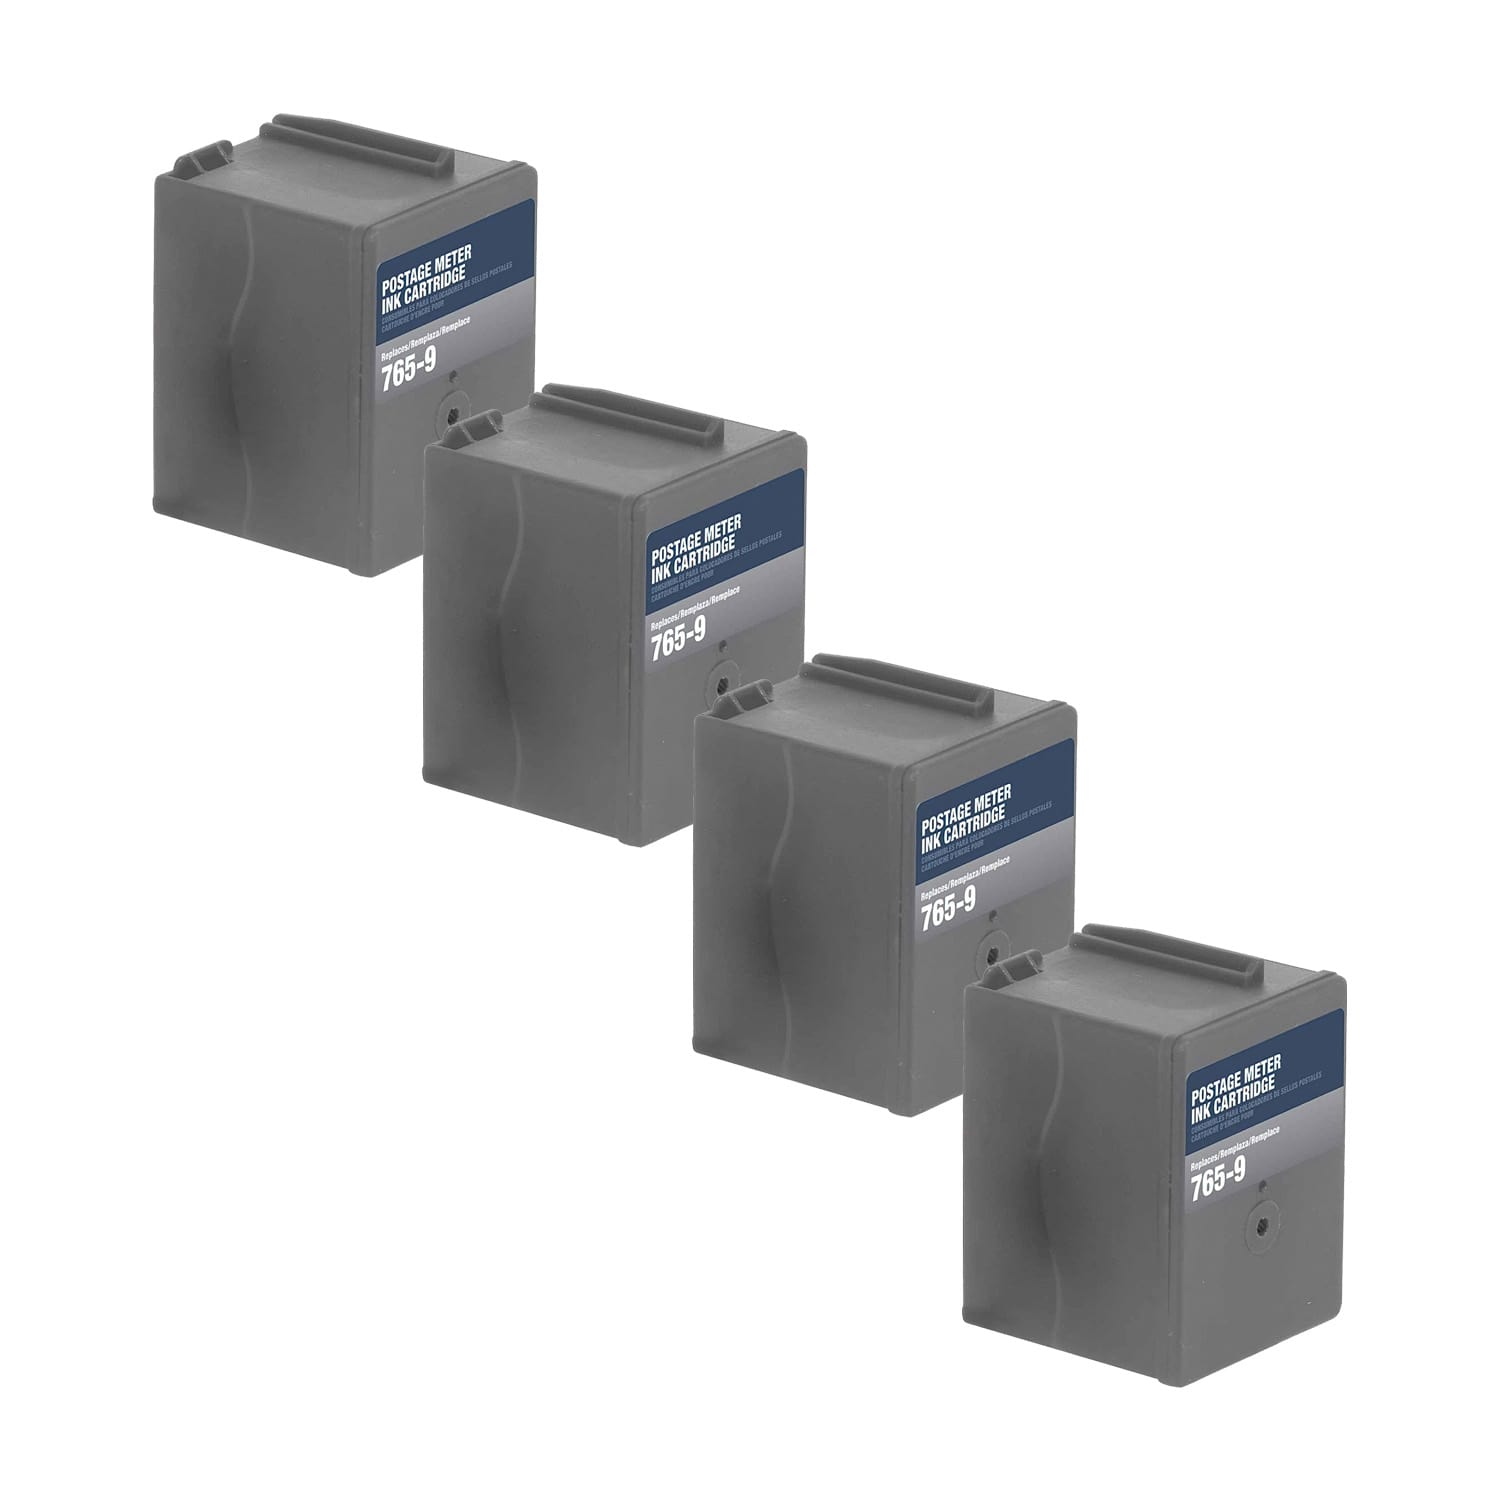 Compatible Pitney Bowes 765-9 Inkjet Pack - 4 Cartridges